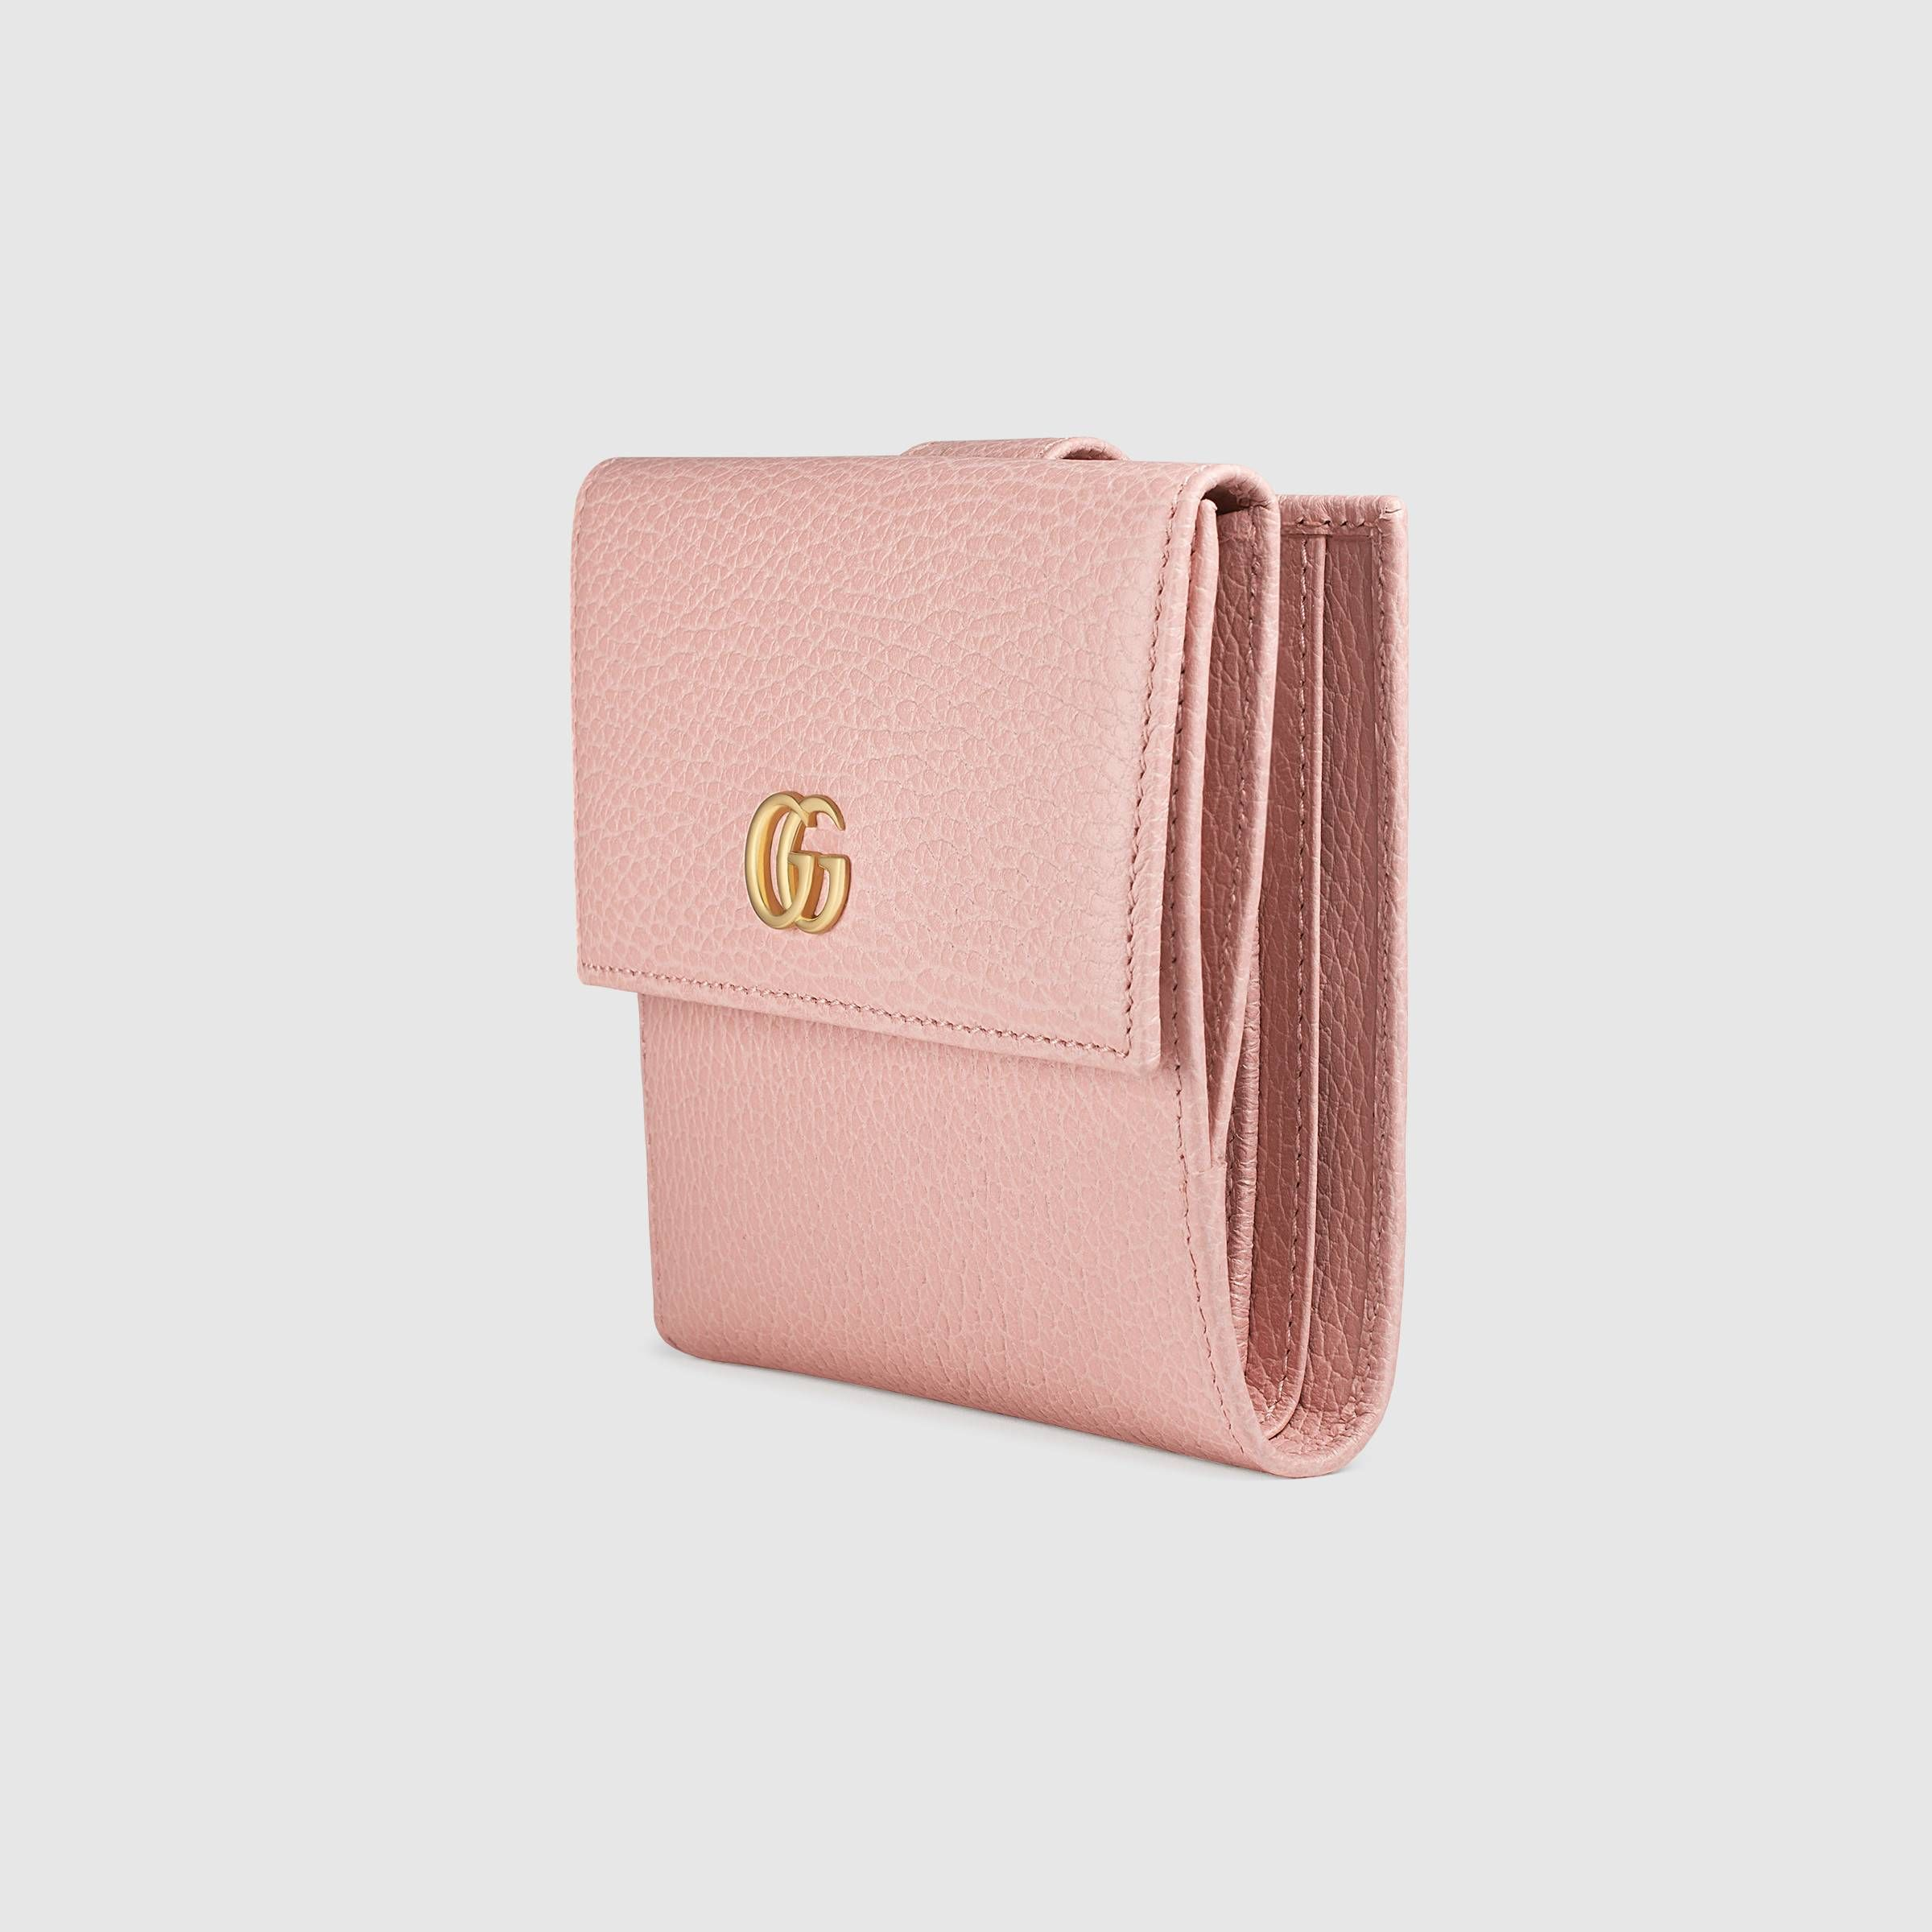 c7cdbe22d73832 Leather french flap wallet - Gucci Women's Wallets & Small Accessories  456122CAO0G5909